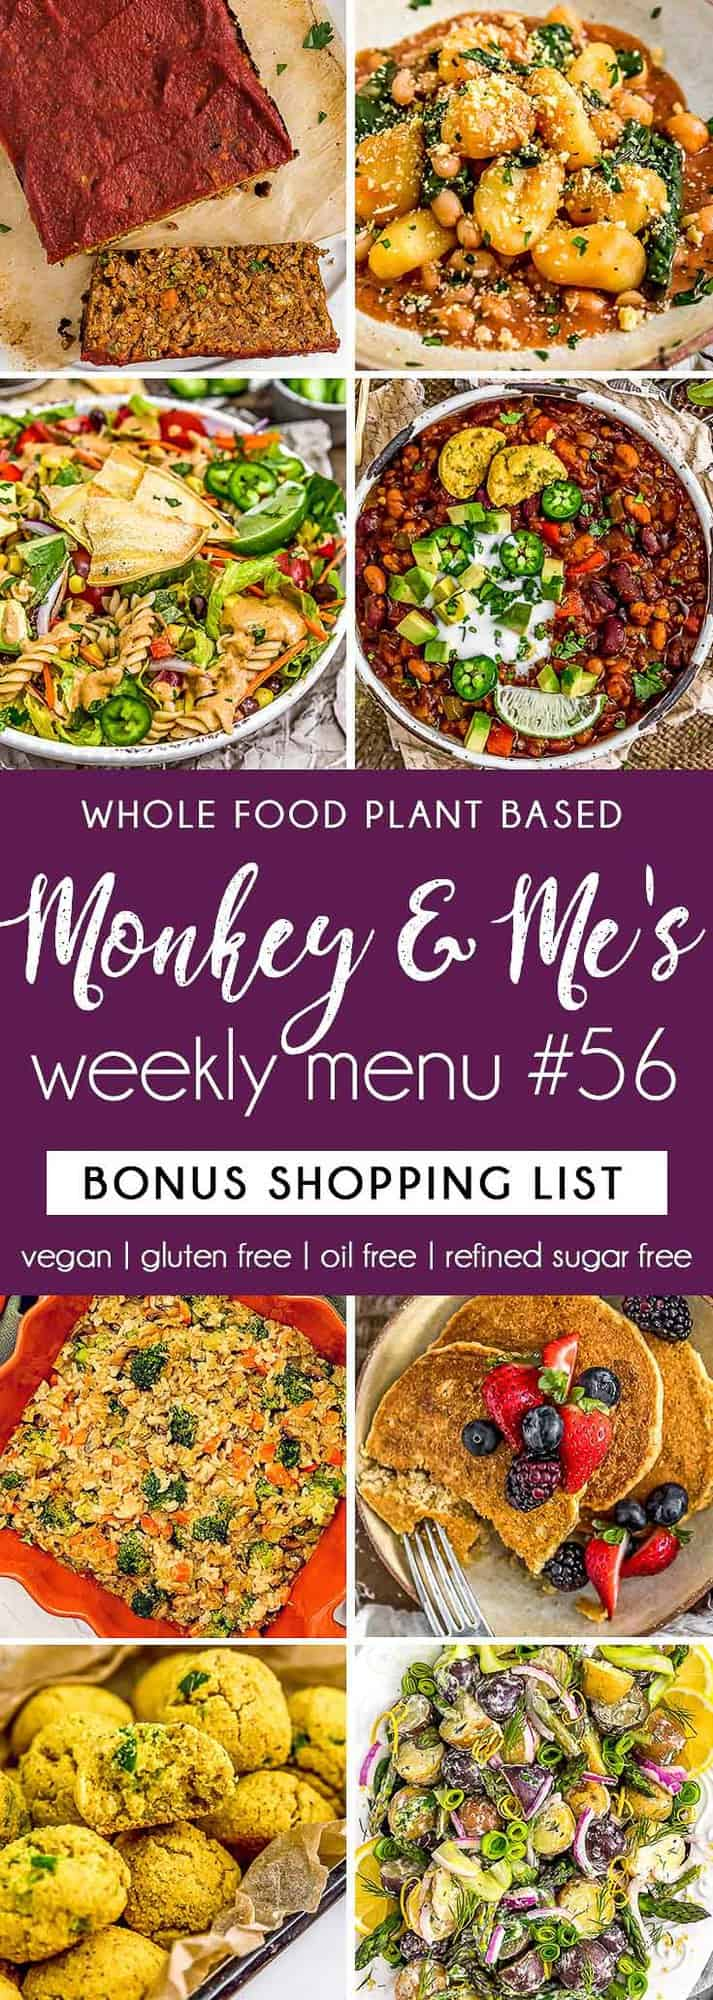 Monkey and Me's Menu 56 featuring 8 recipes